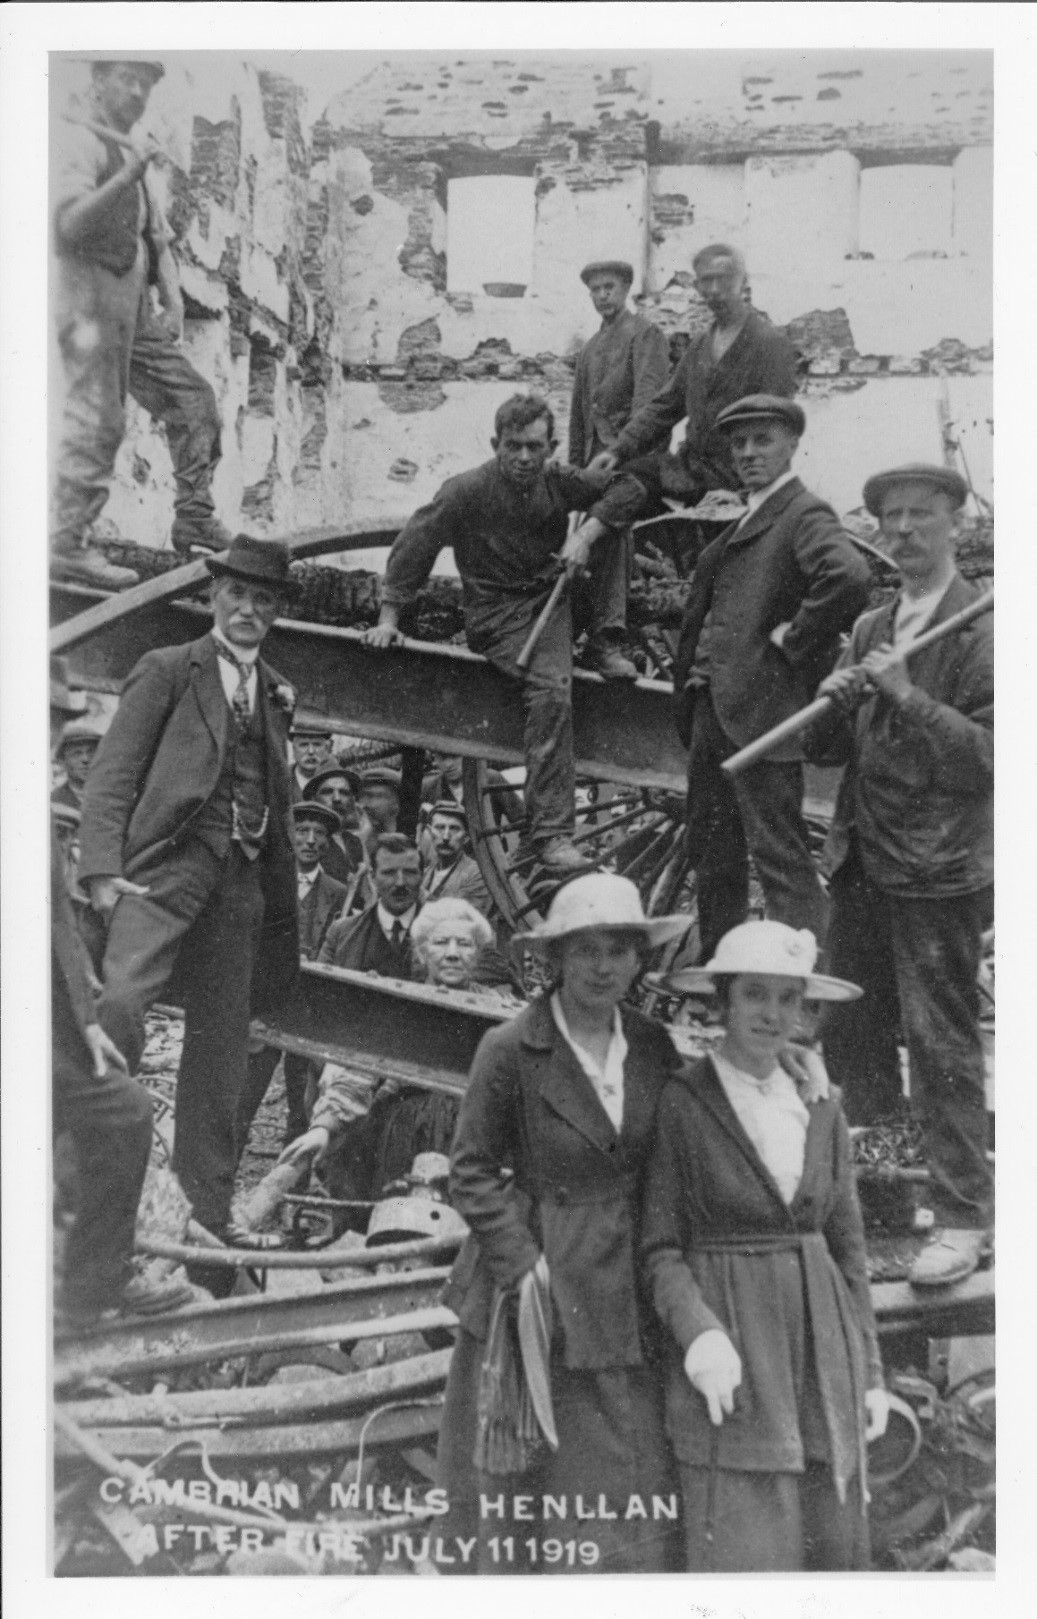 David Lewis on the left of the photograph with the moustache and hat in the remains of Cambrian Mills